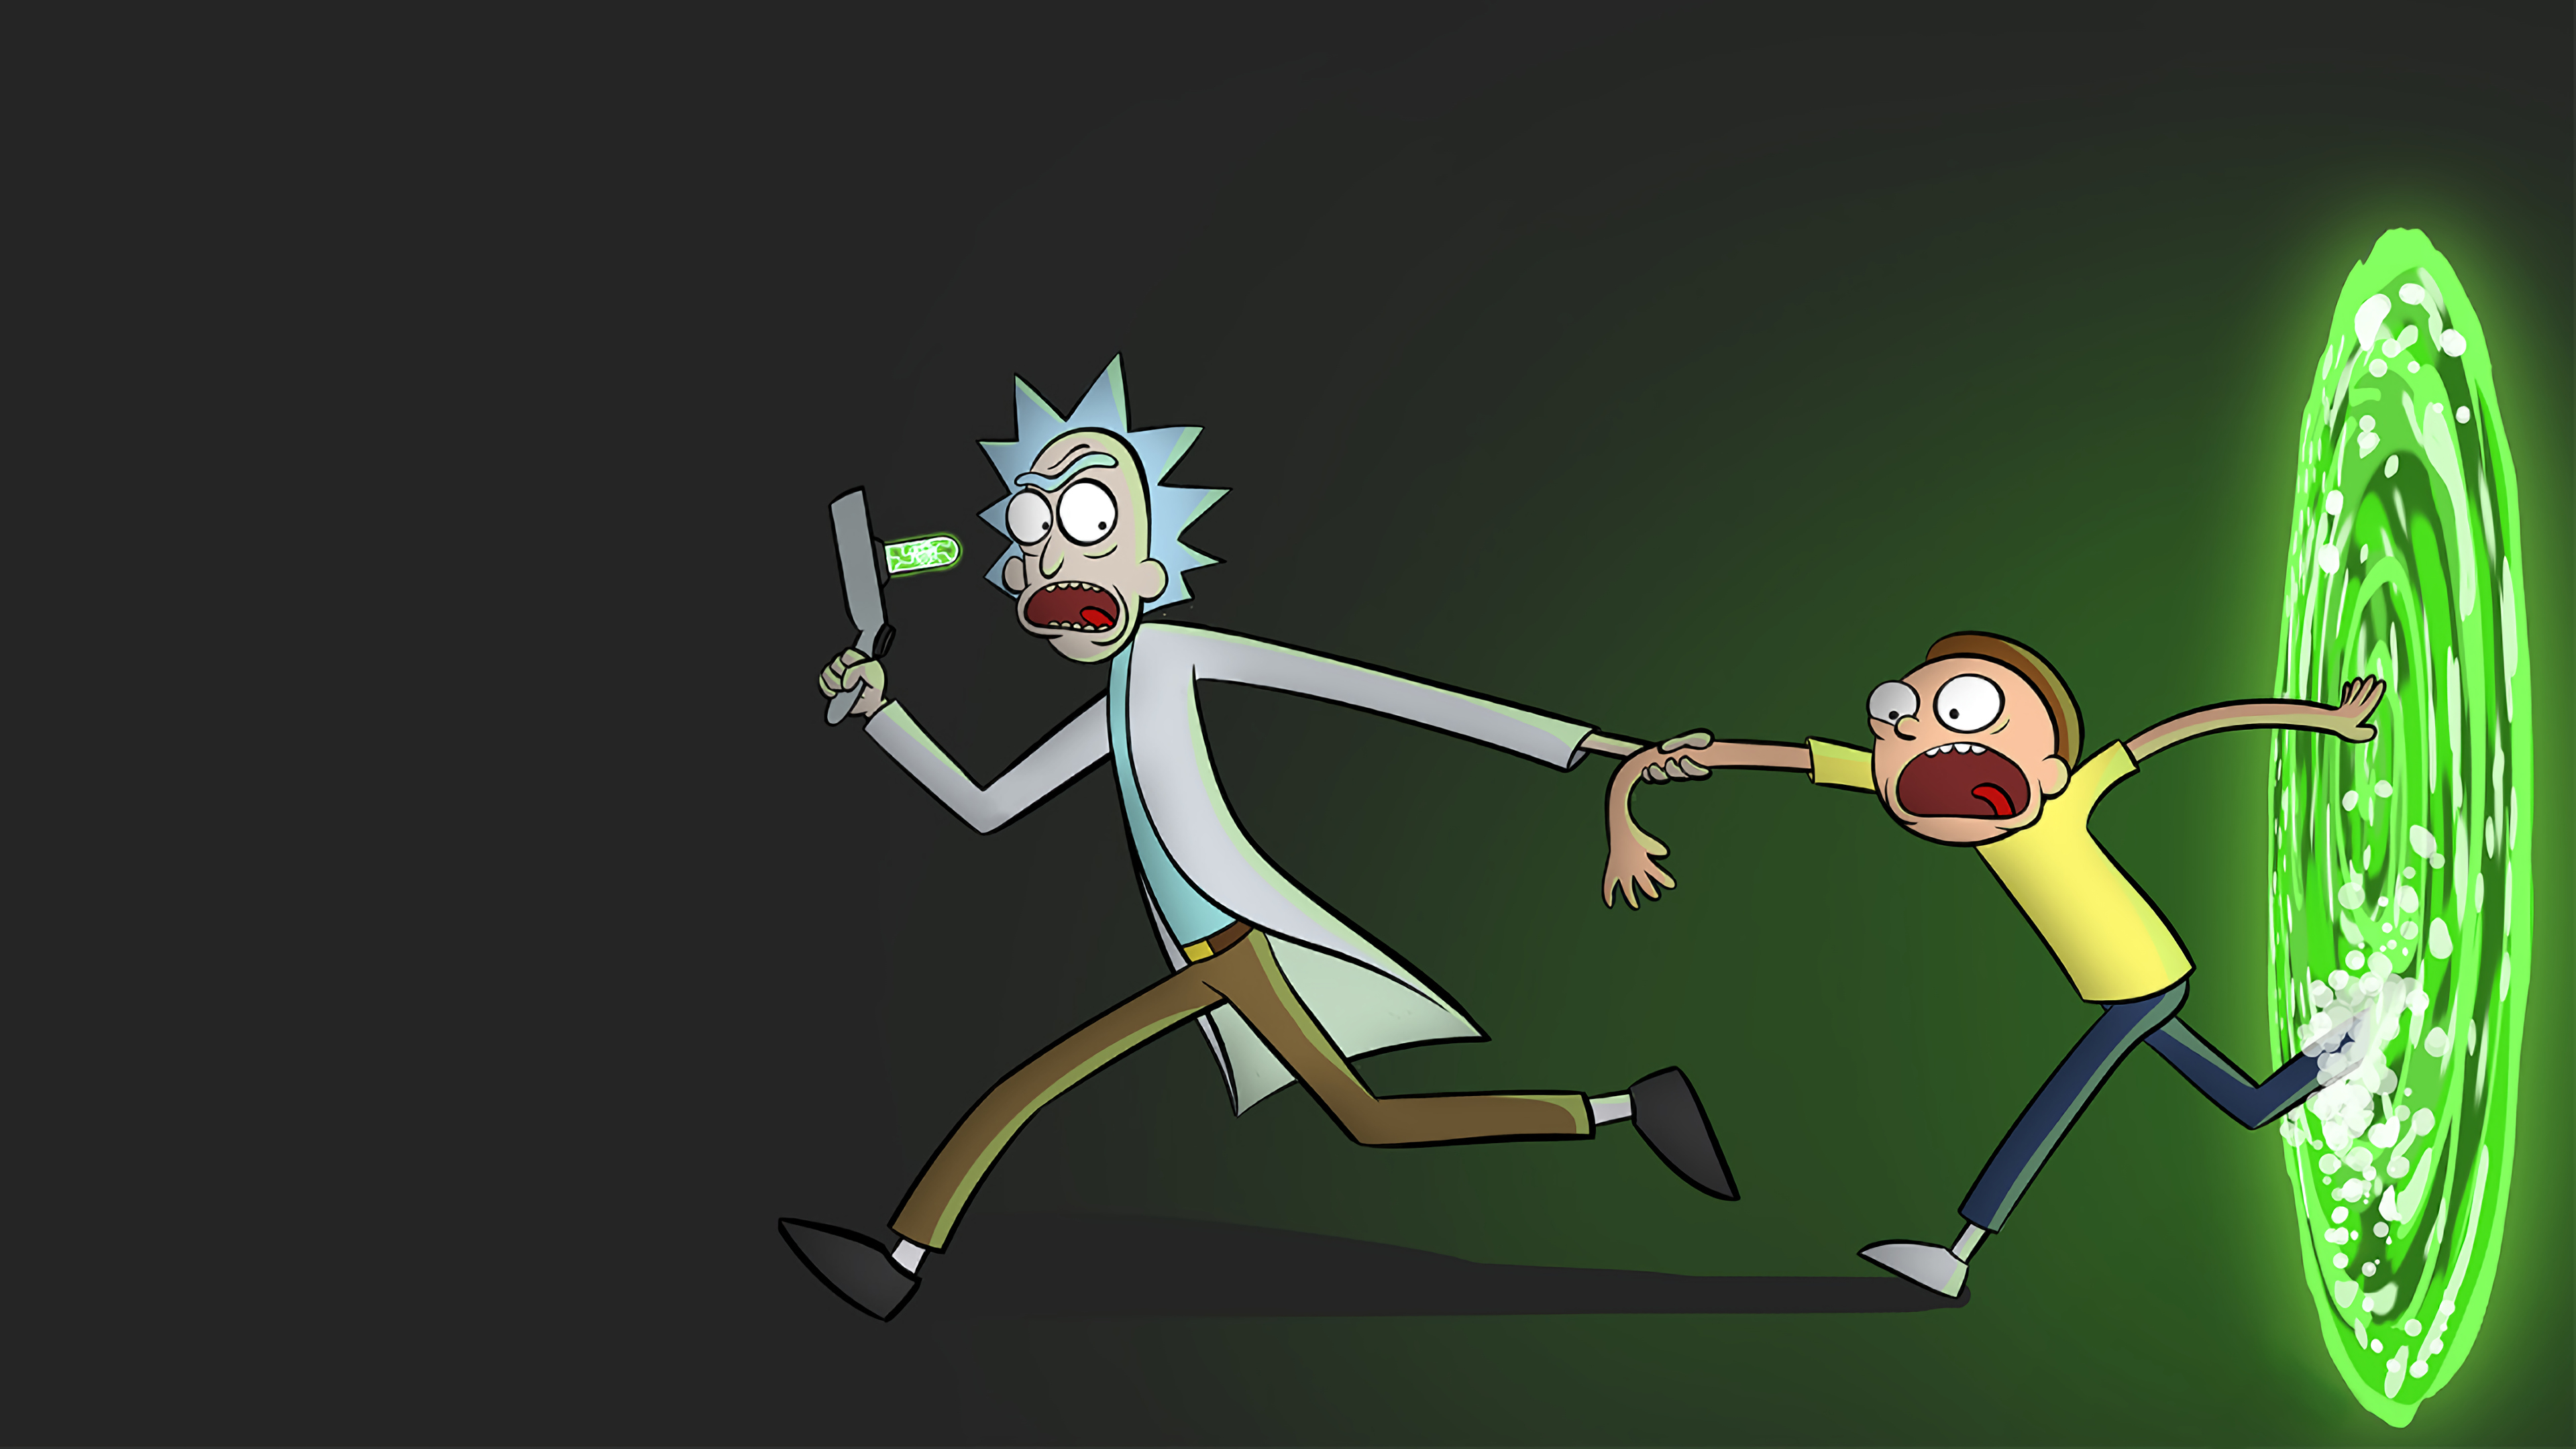 Rick and Morty Portal Wallpaper HD TV Series 4K Wallpapers 3840x2160